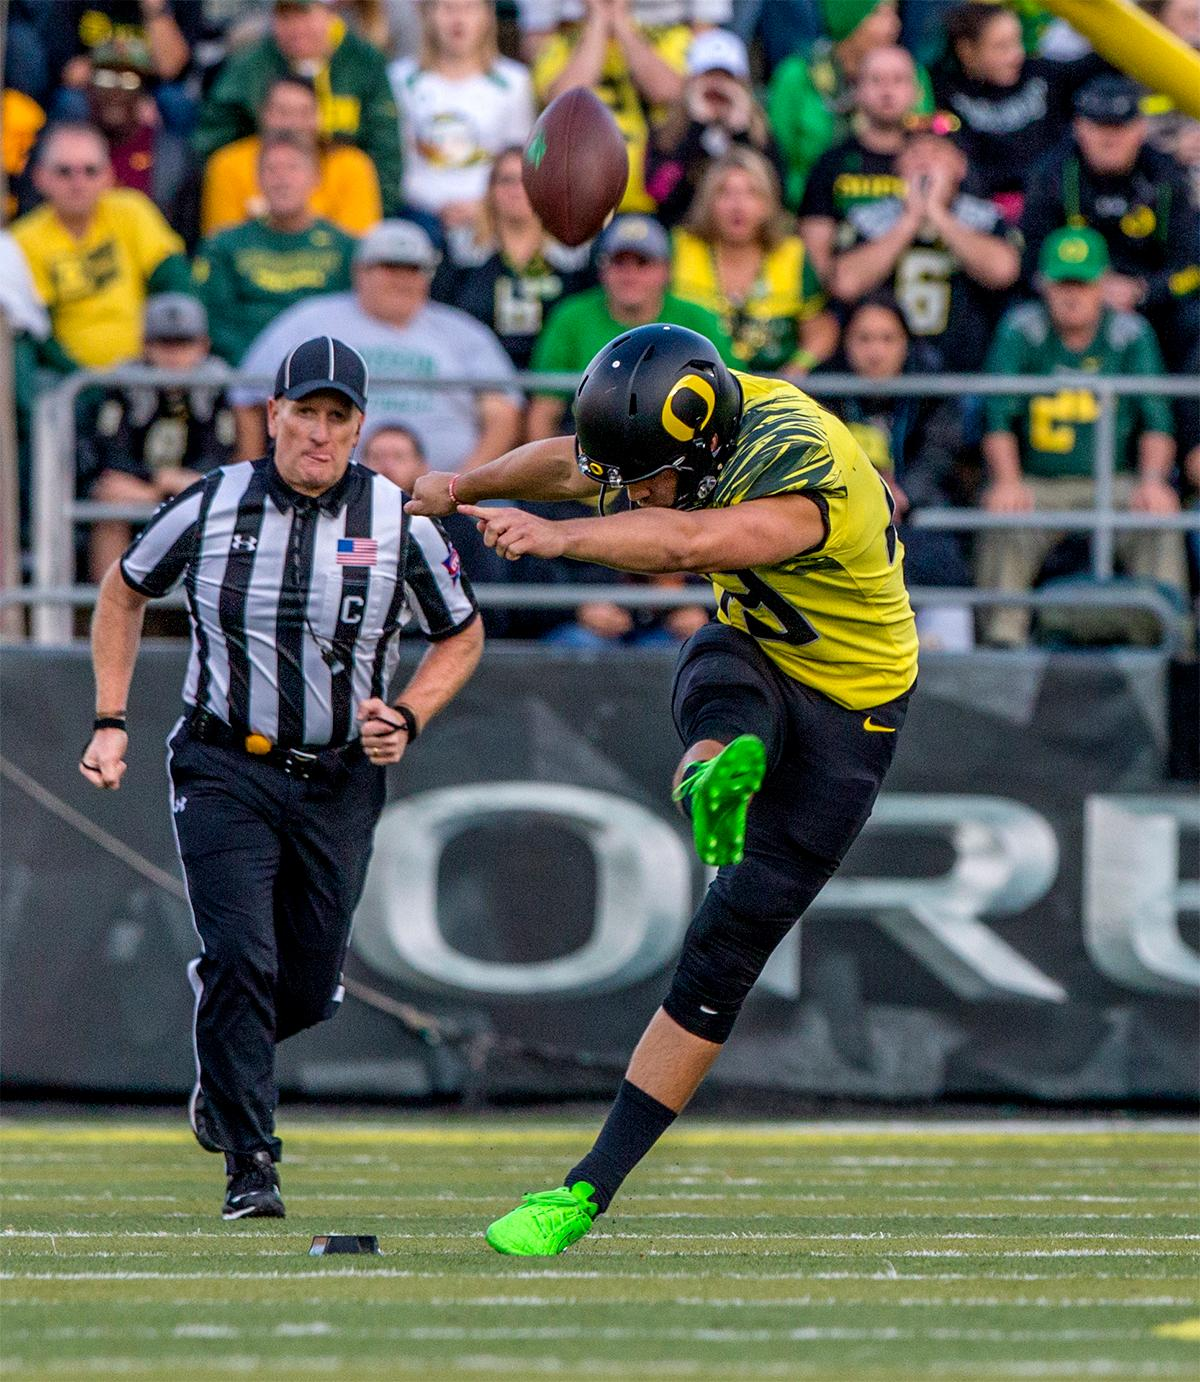 The Duck's Matt Wogan (#49) performs the kick off. The Oregon Ducks broke their losing streak by defeating the ASU Sun Devils on Saturday 54-35. Photo by August Frank, Oregon News Lab